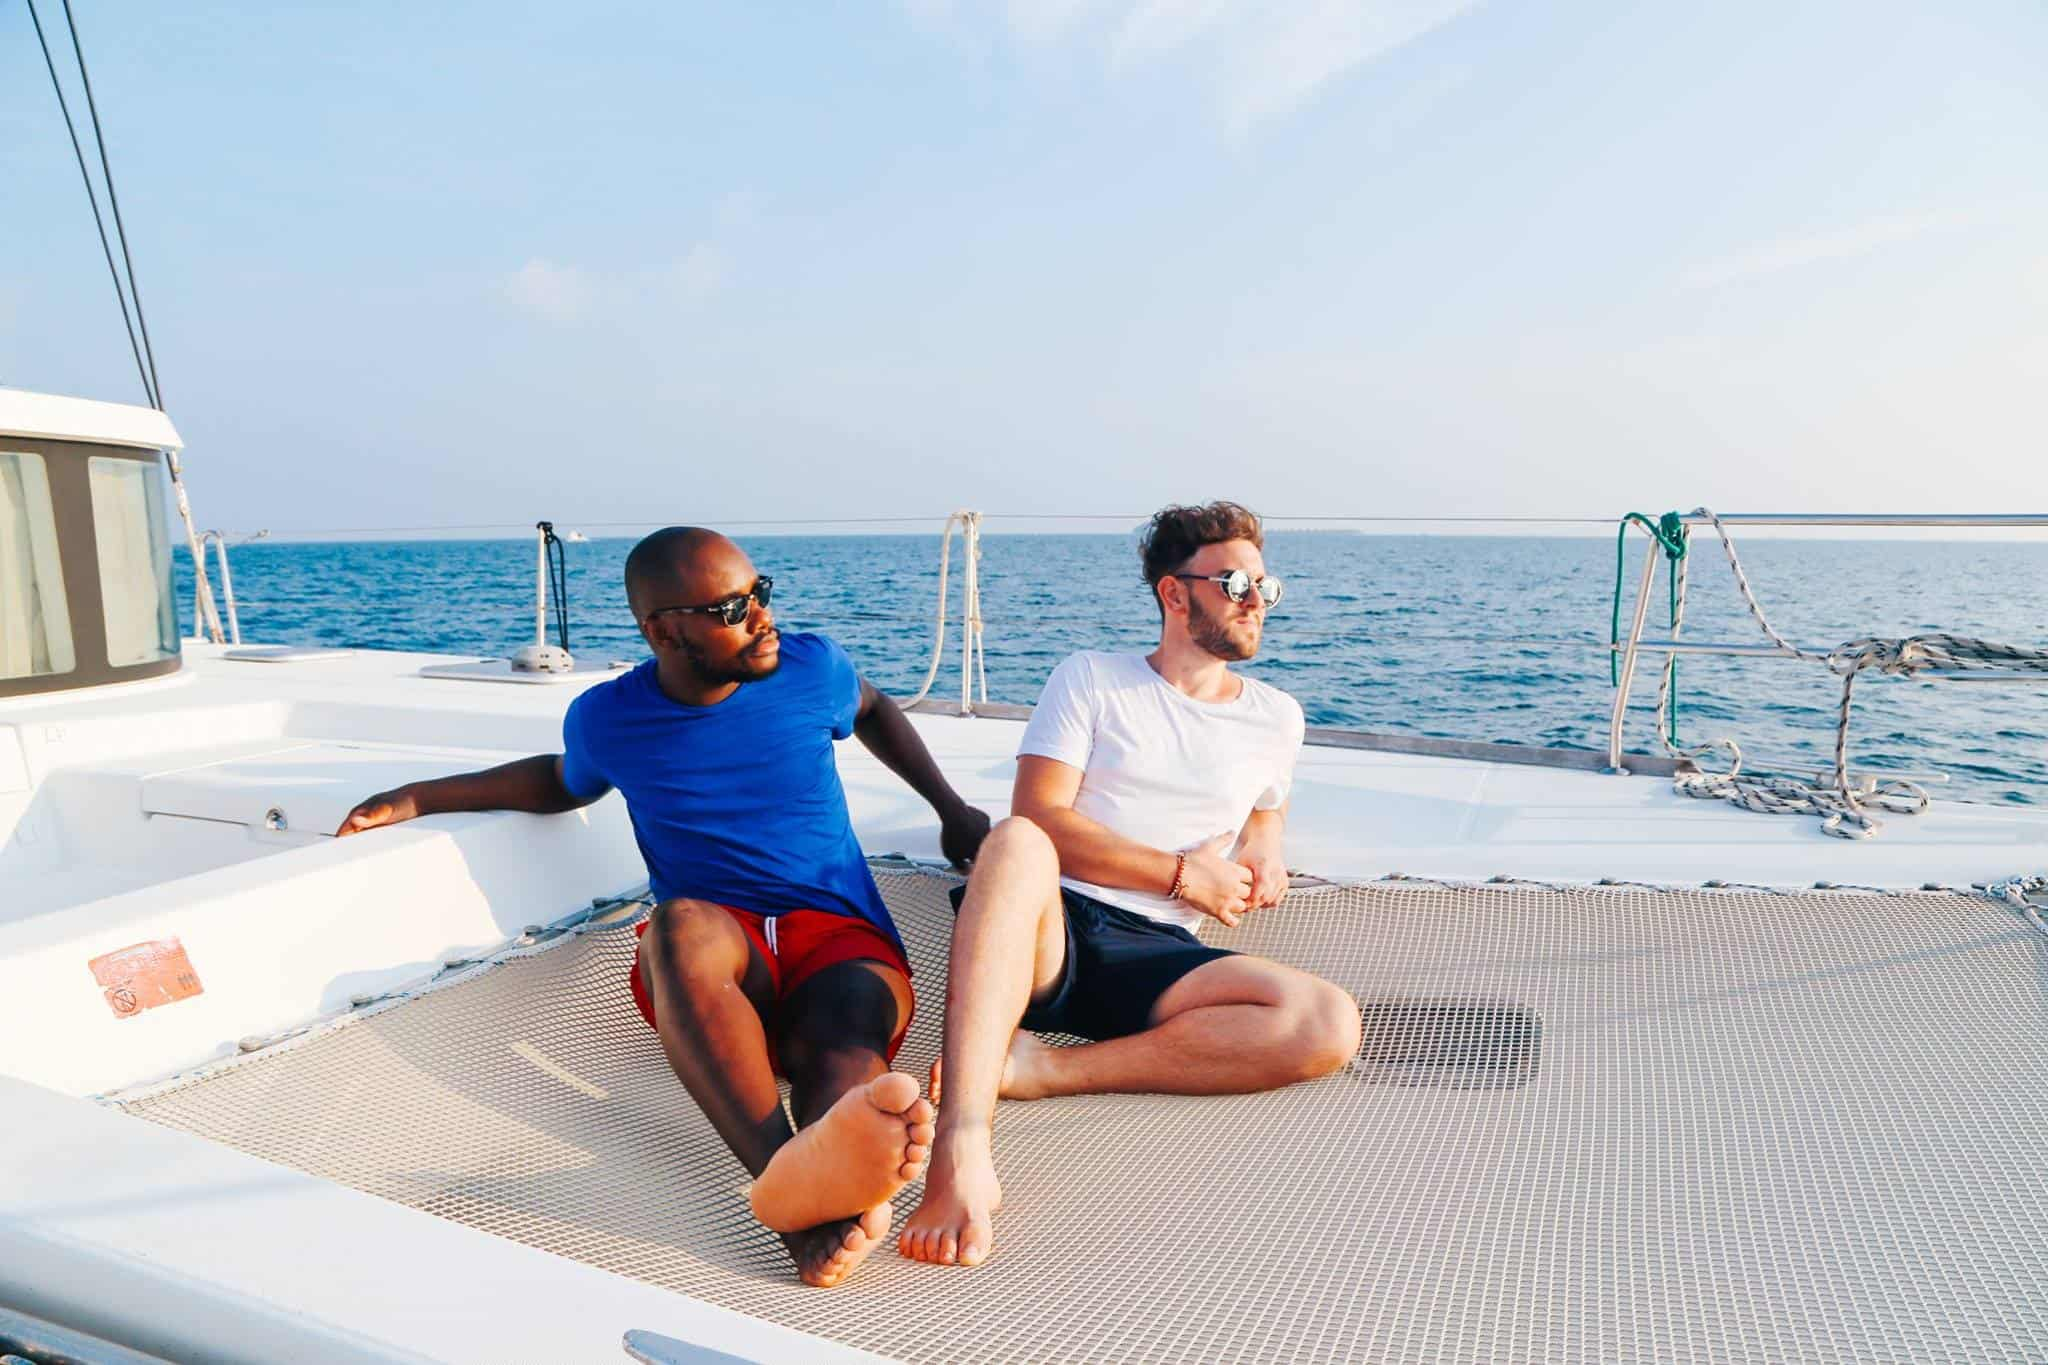 yaya and lloyd sitting on a boat